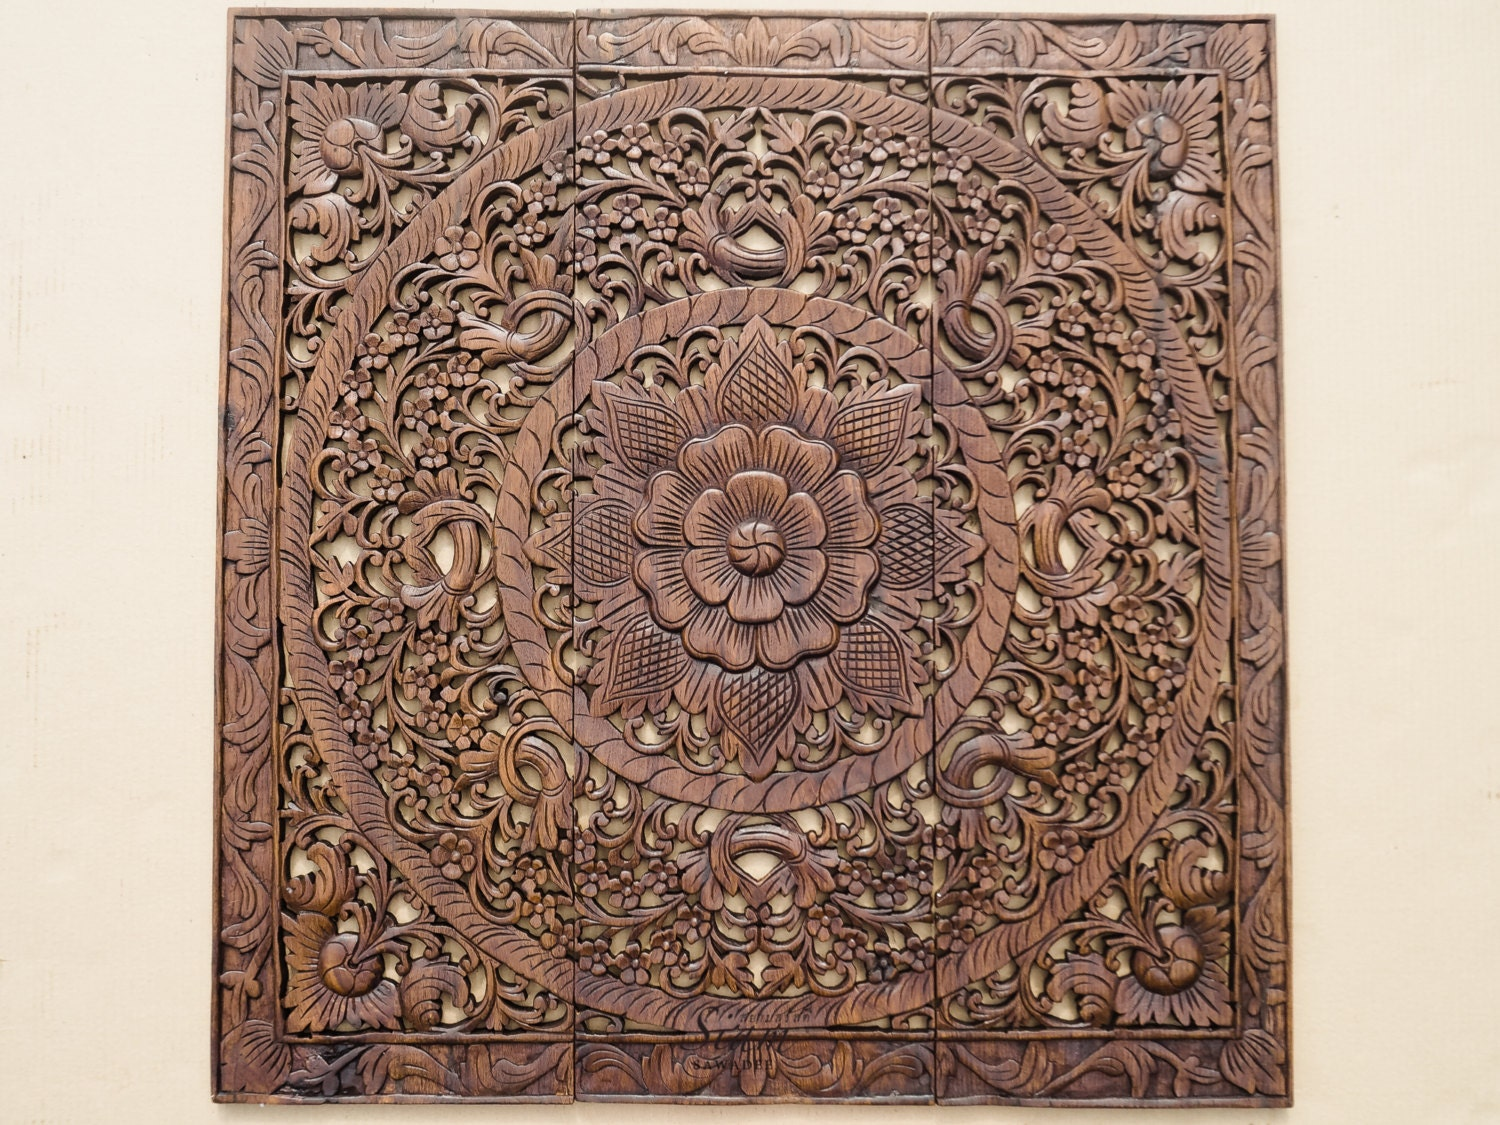 Carved Wood Wall Decor Panel : Wall art decor carved wood panel asian home by siamsawadee